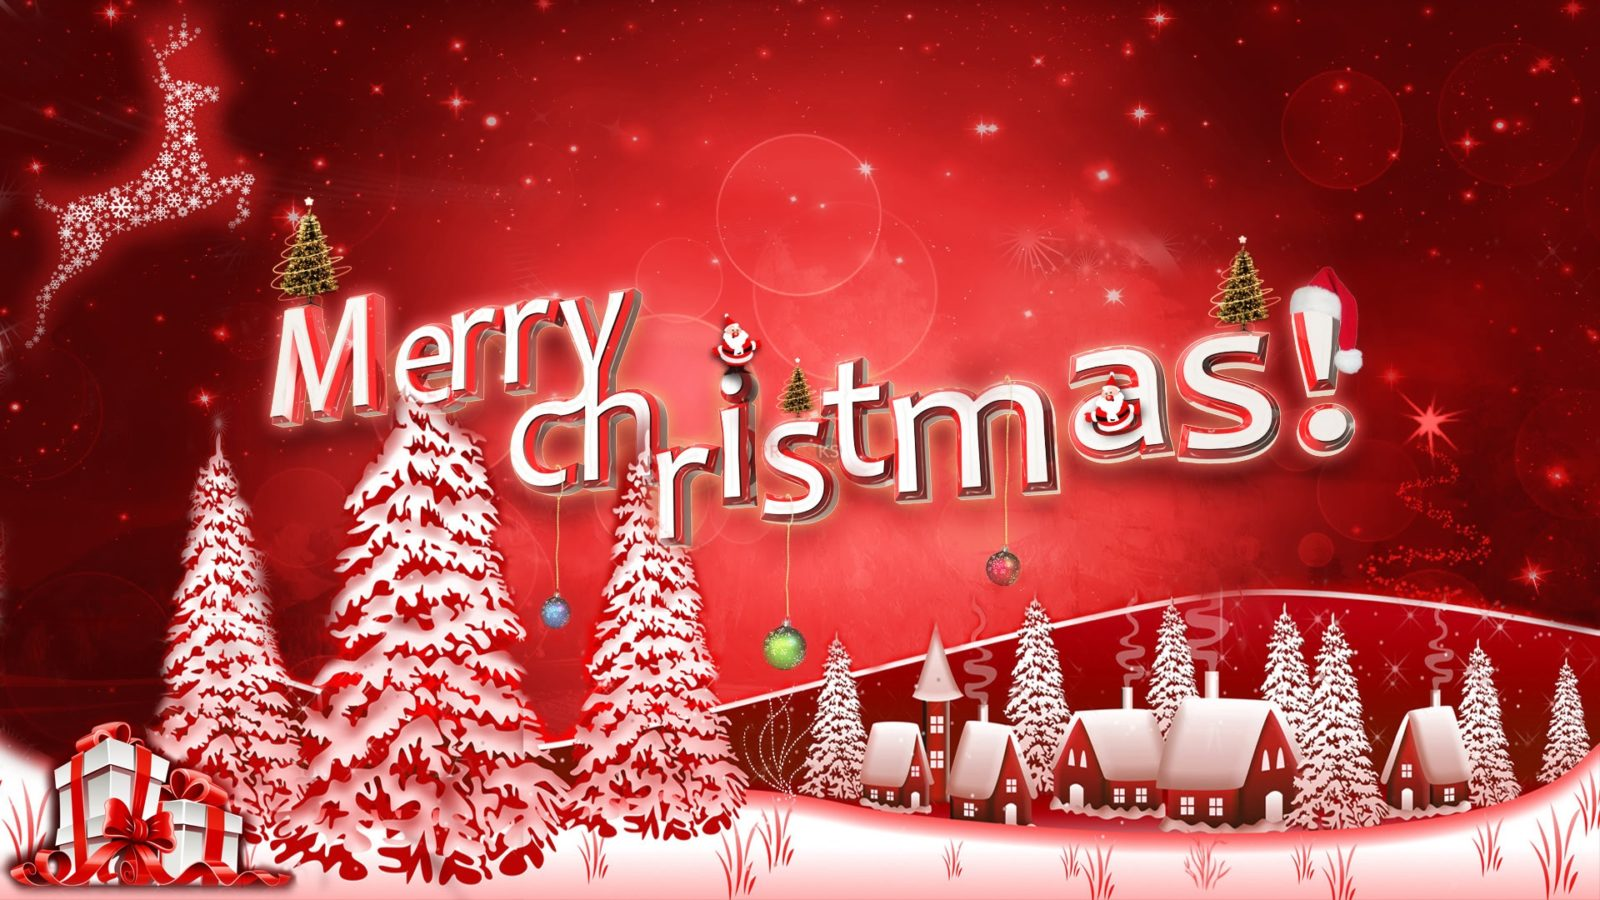 Merry Christmas Family.Merry Christmas Wishes Merry Christmas Day Quotes